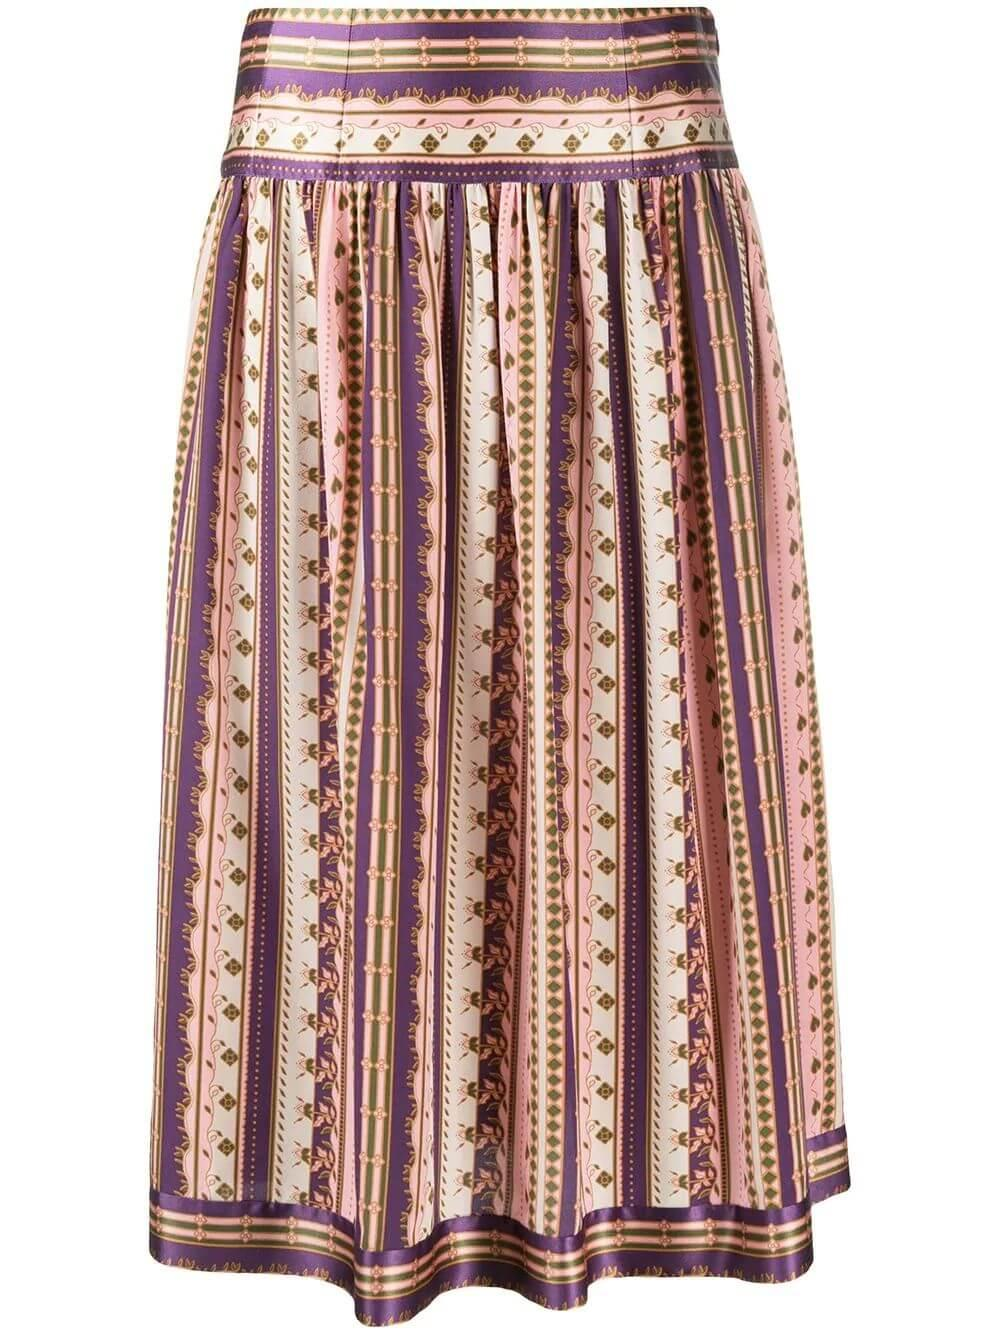 Striped Burnout Skirt Item # 78787-028